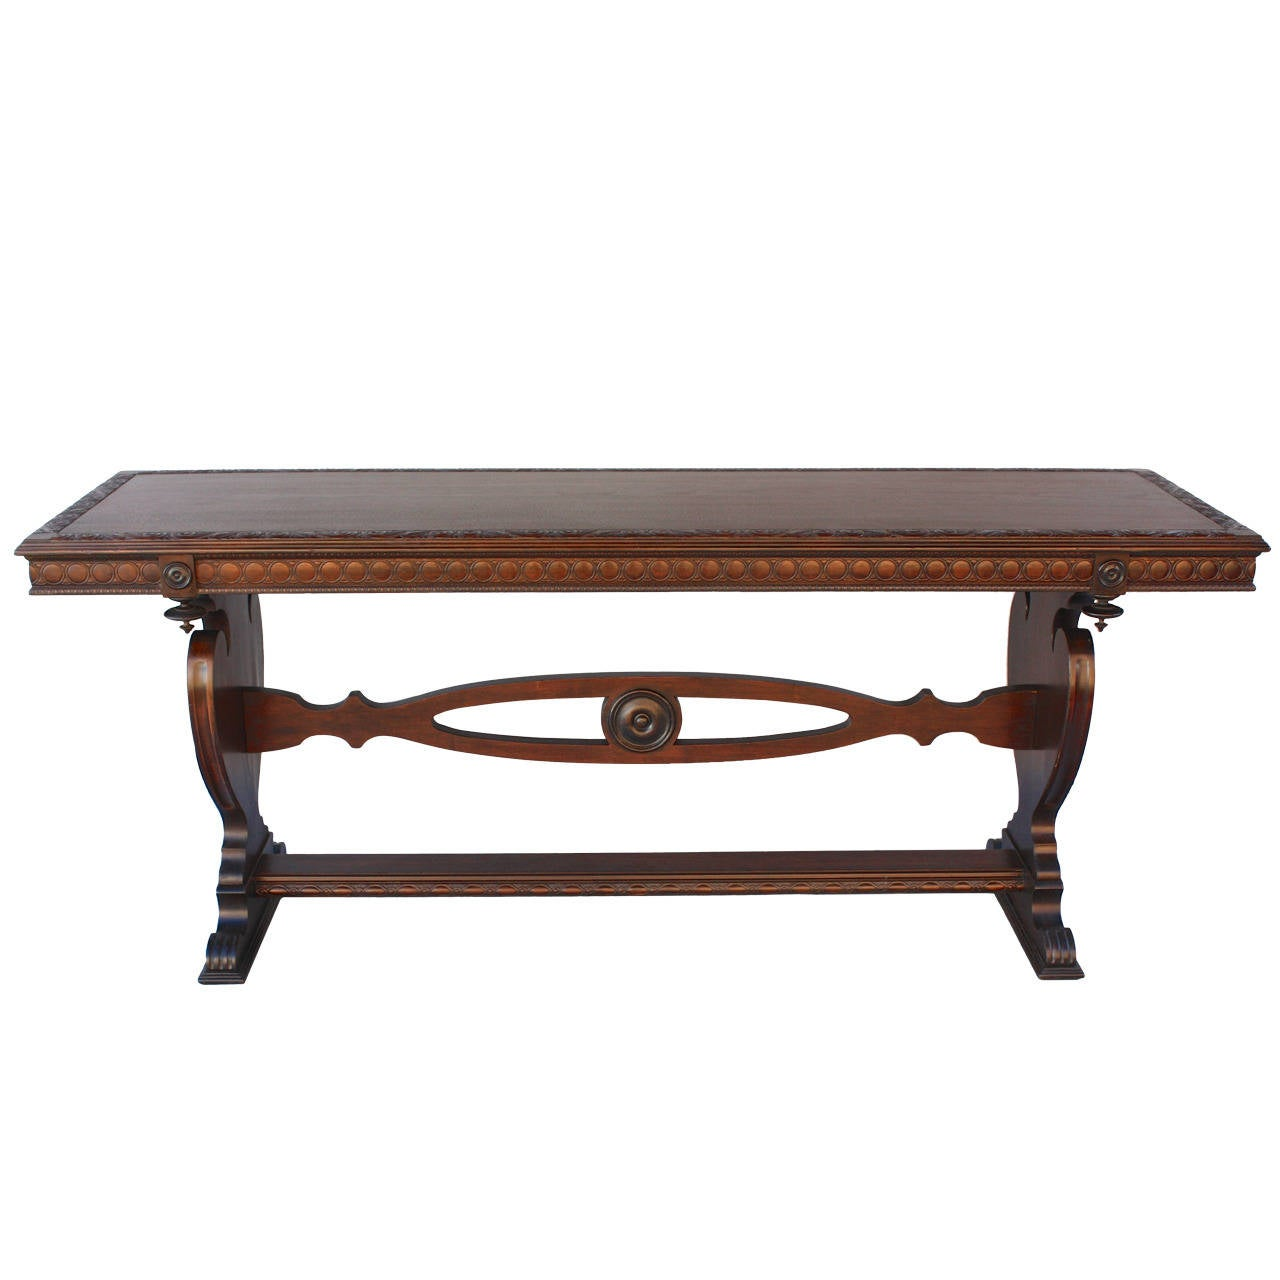 Antique carved walnut console or sofa table at stdibs